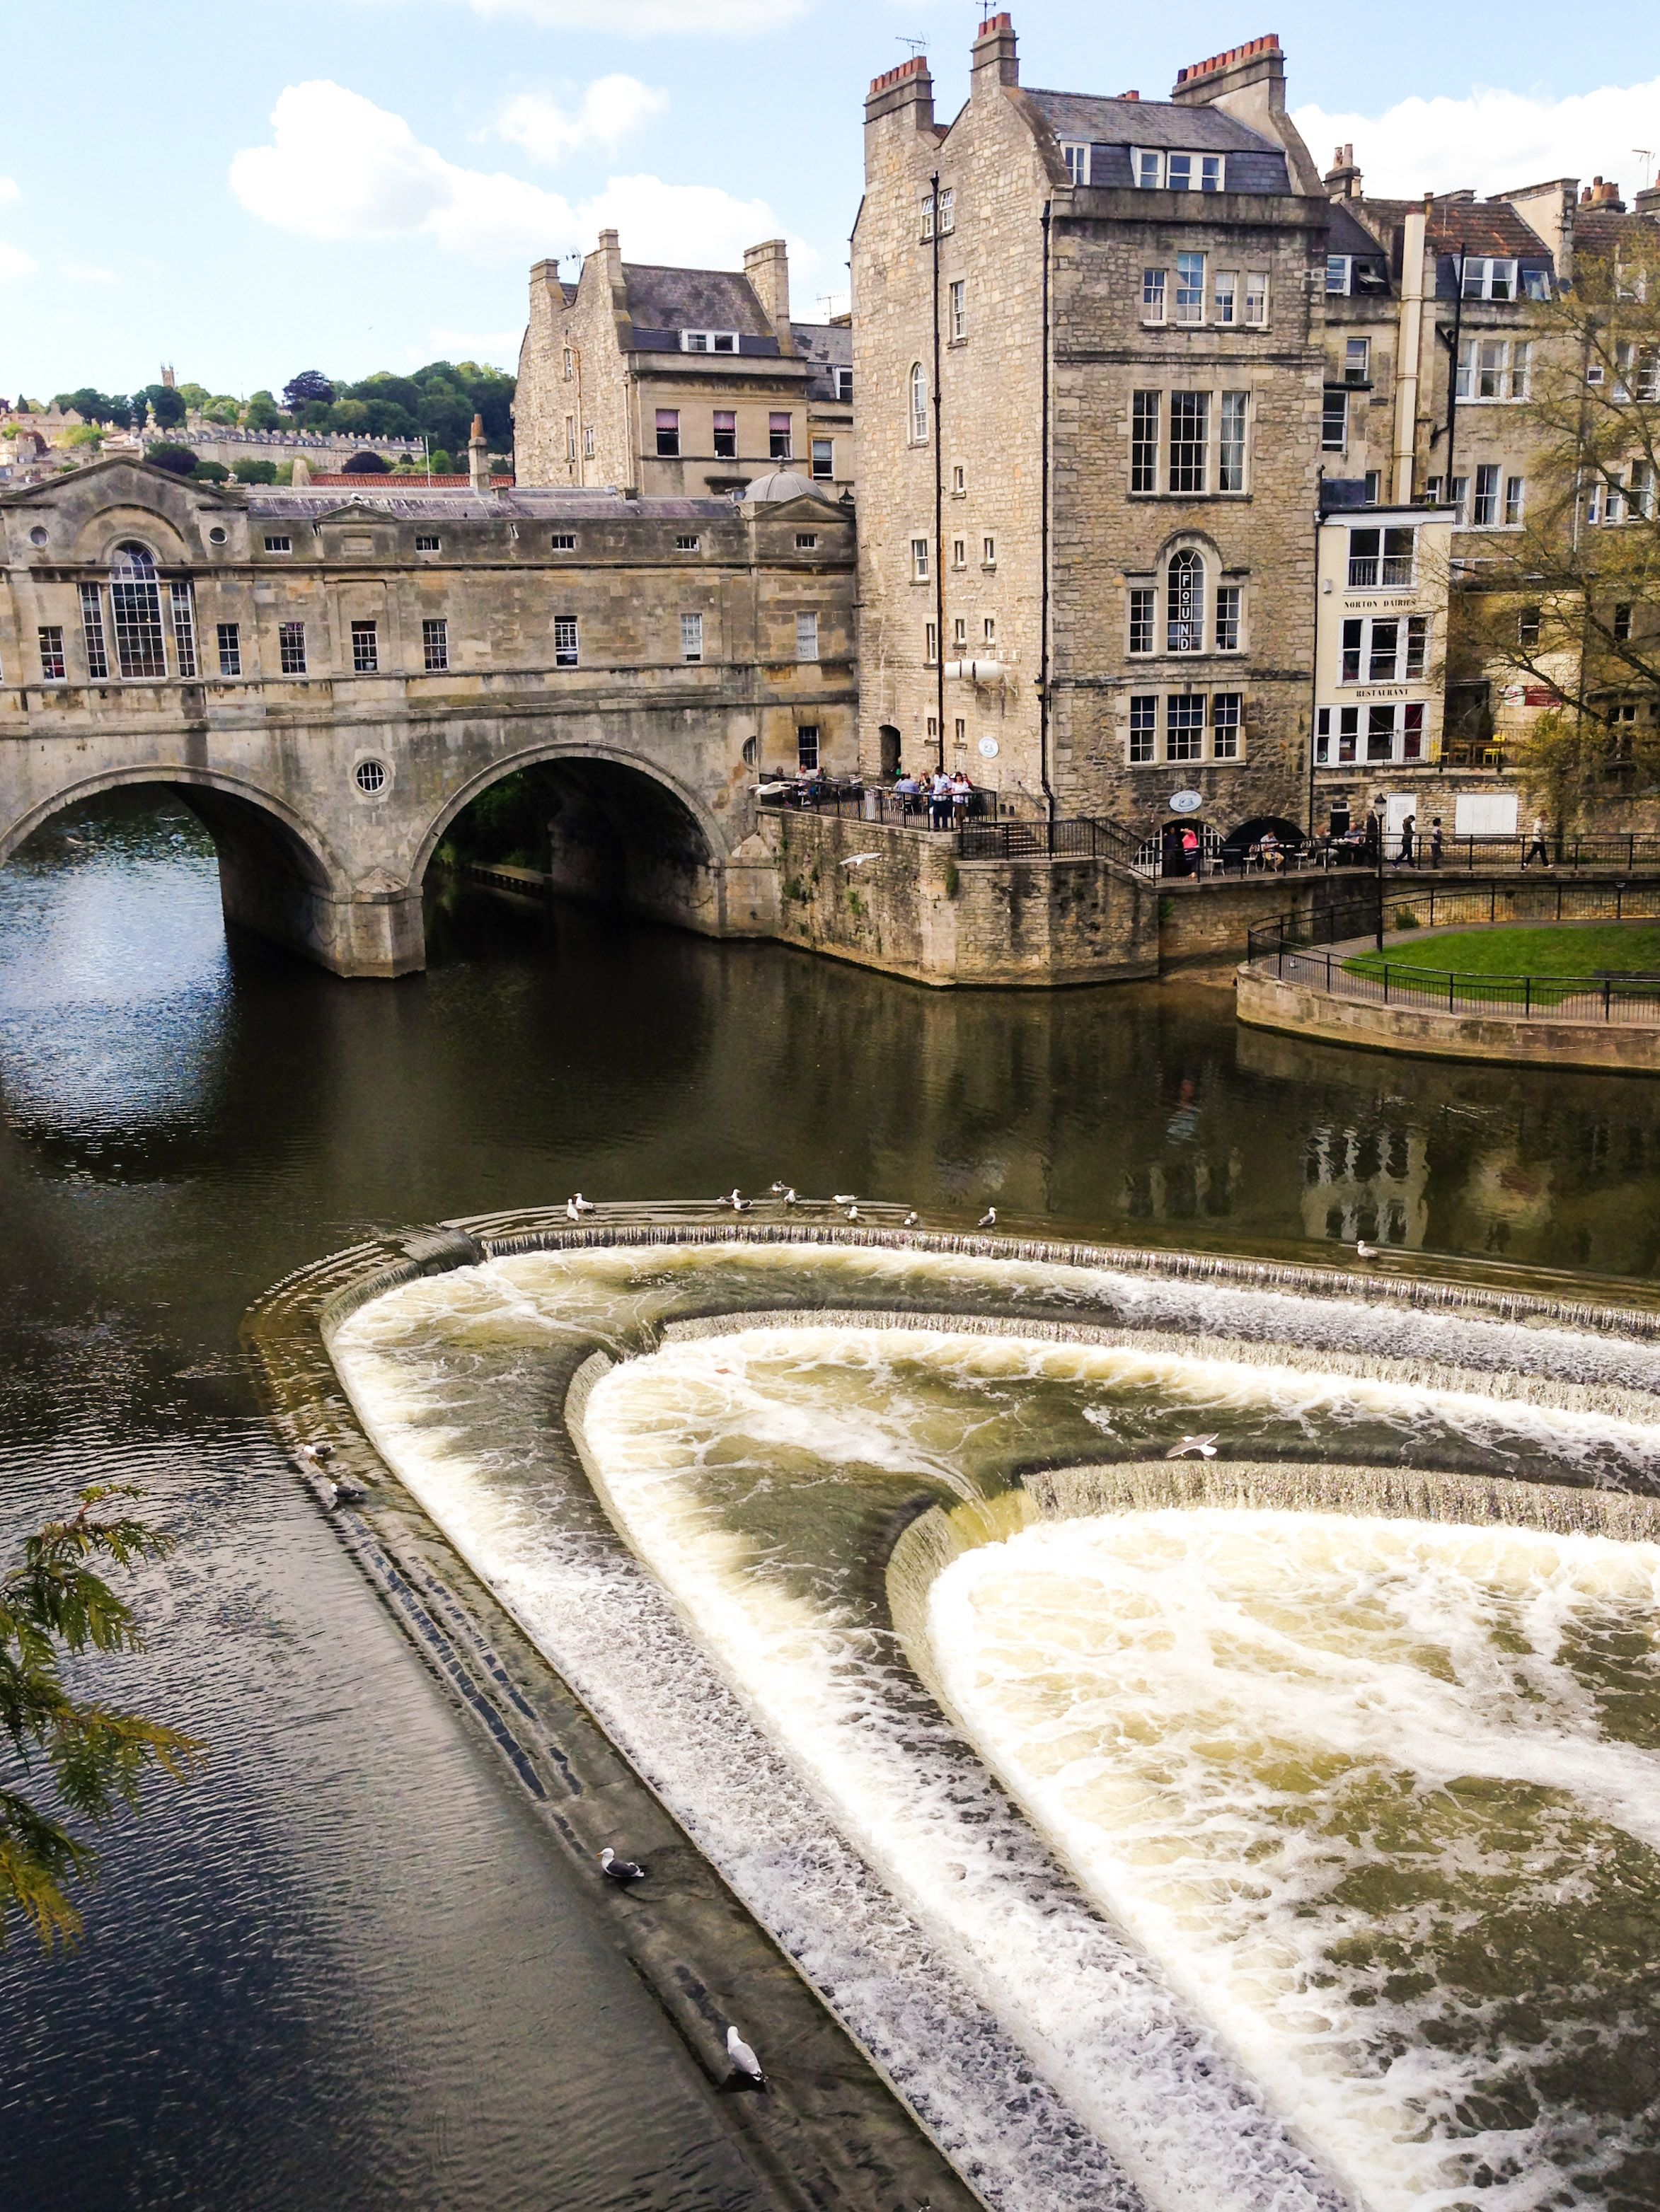 Meadow Kids Head Office Is Located In The Georgian City Of Bath Spa A Jewel Crown English Cities Surrounded By Beautiful Rolling Countryside And